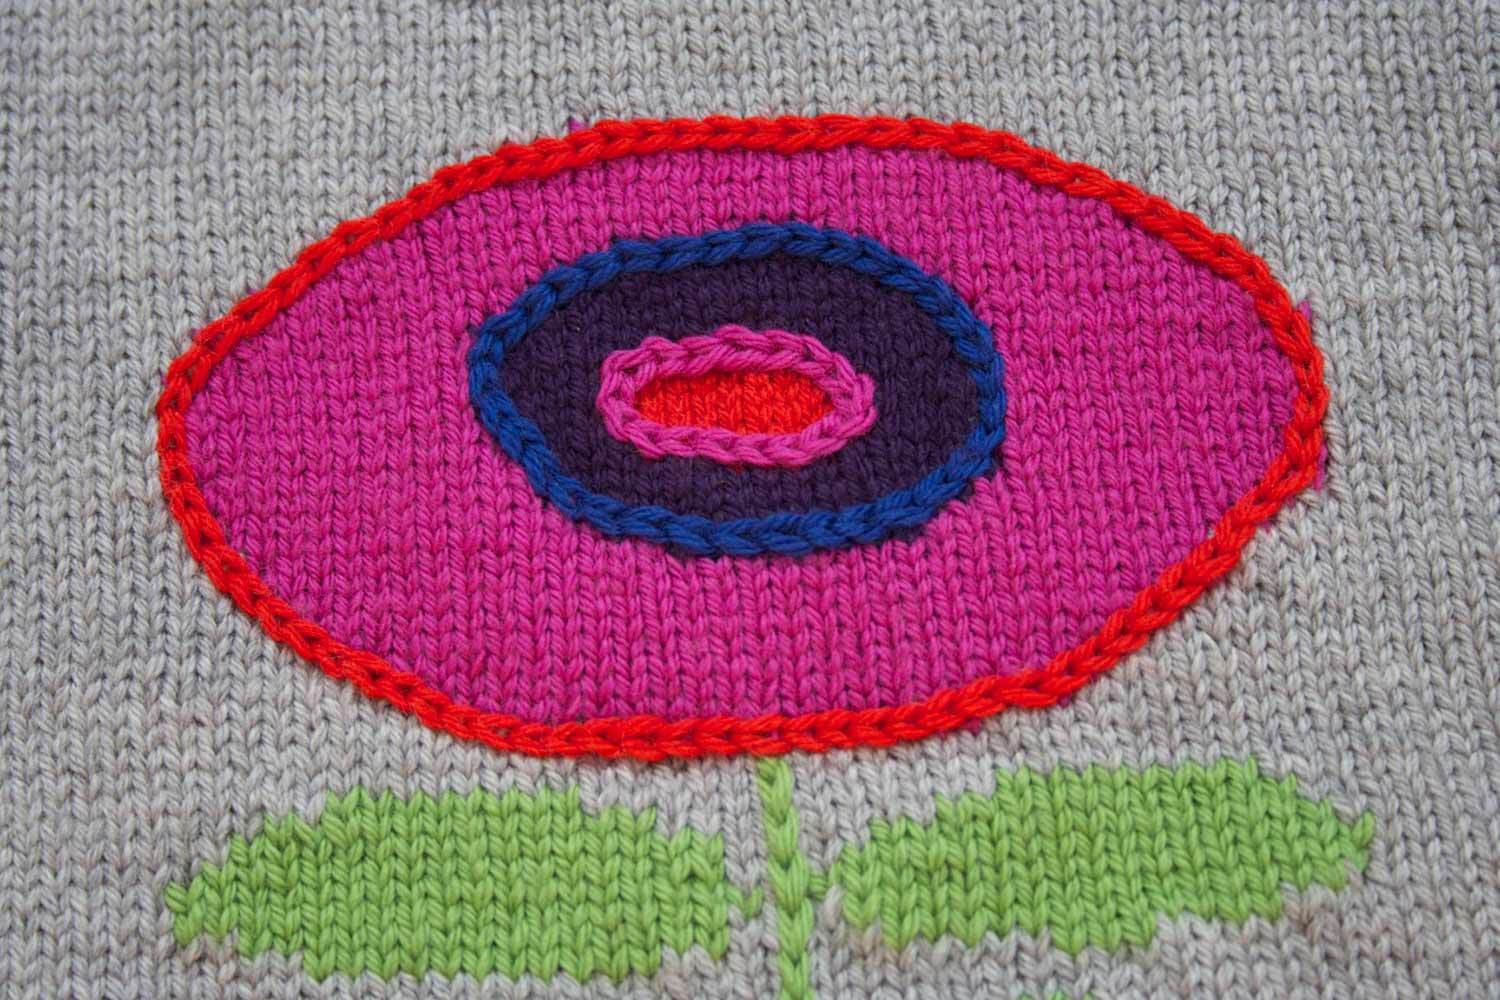 A knitted flower formed with concentric circles of colour worked in the intarsia technique, bordered with contrasting colour chain stitch embellishment.